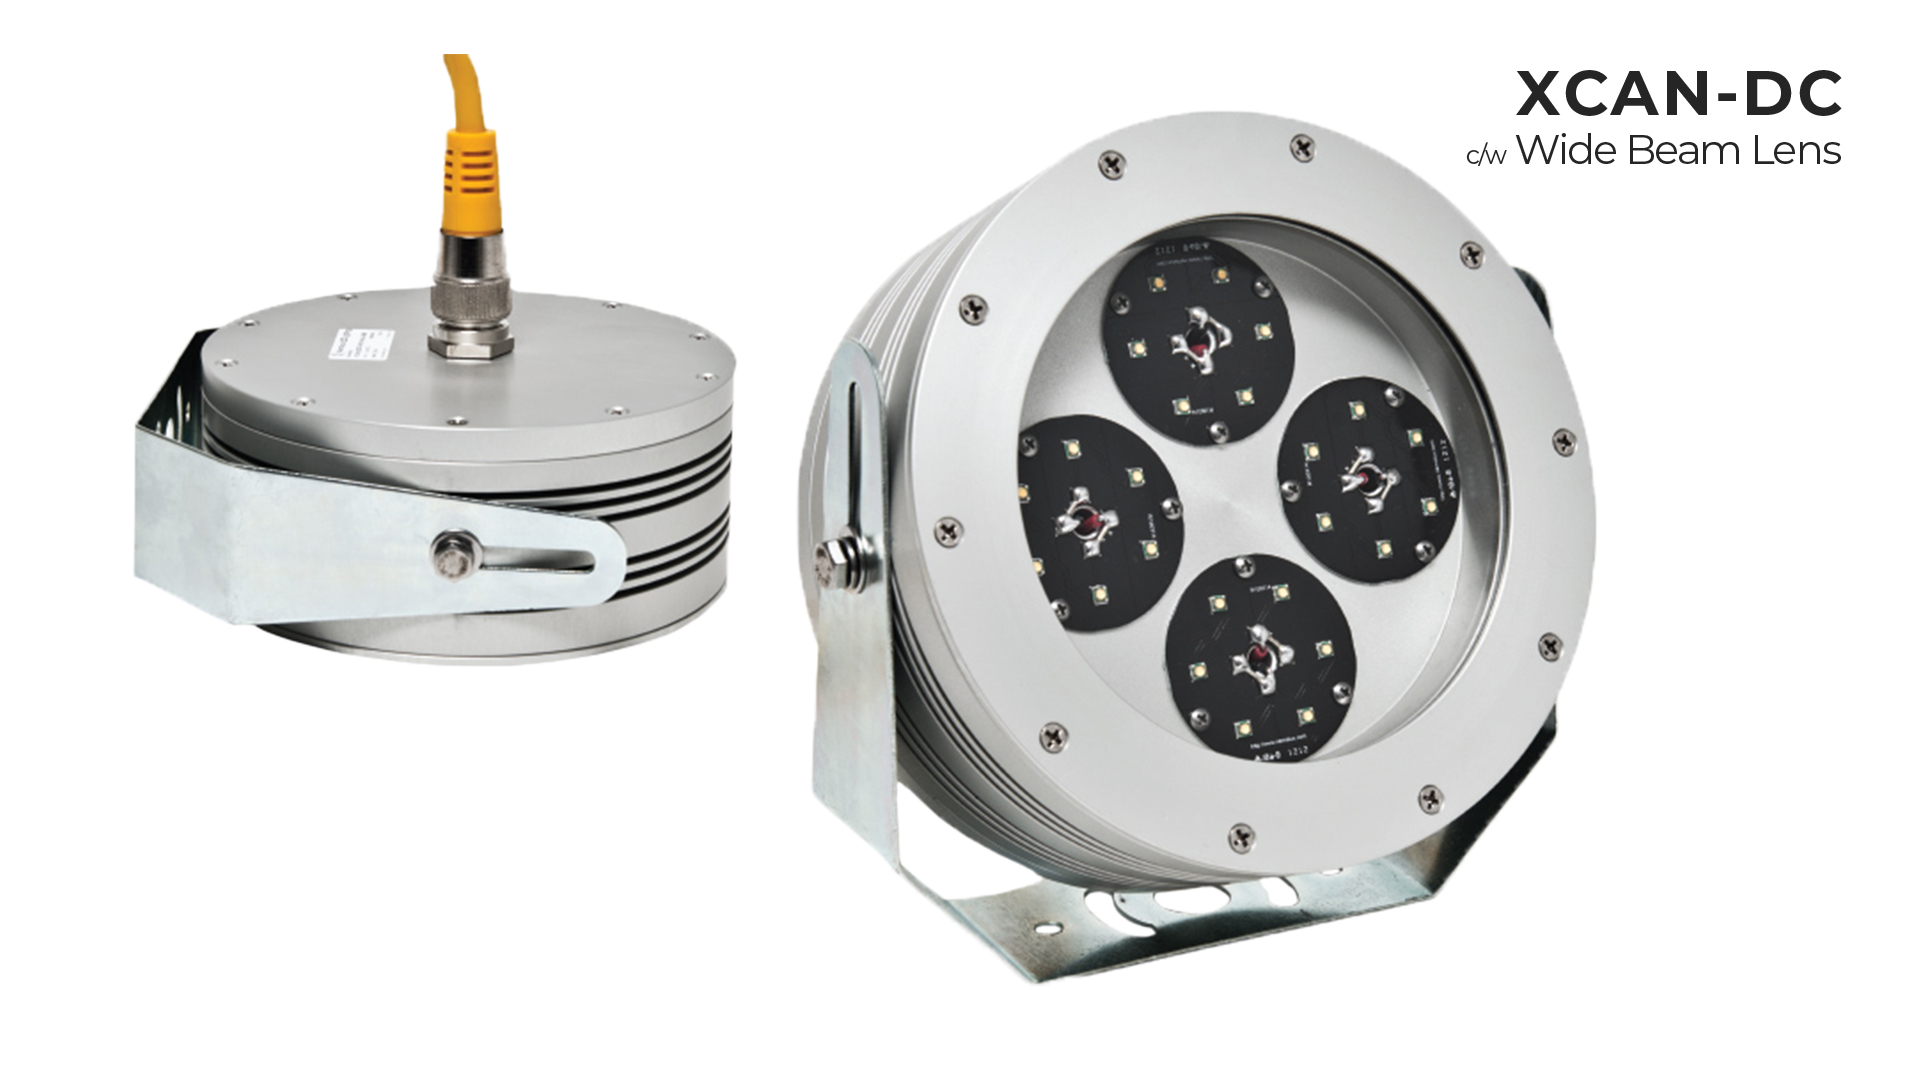 Nemalux XCAN-DC hazardous location class I div 2 (c1d2) rated industrial LED luminaire with wide beam lens